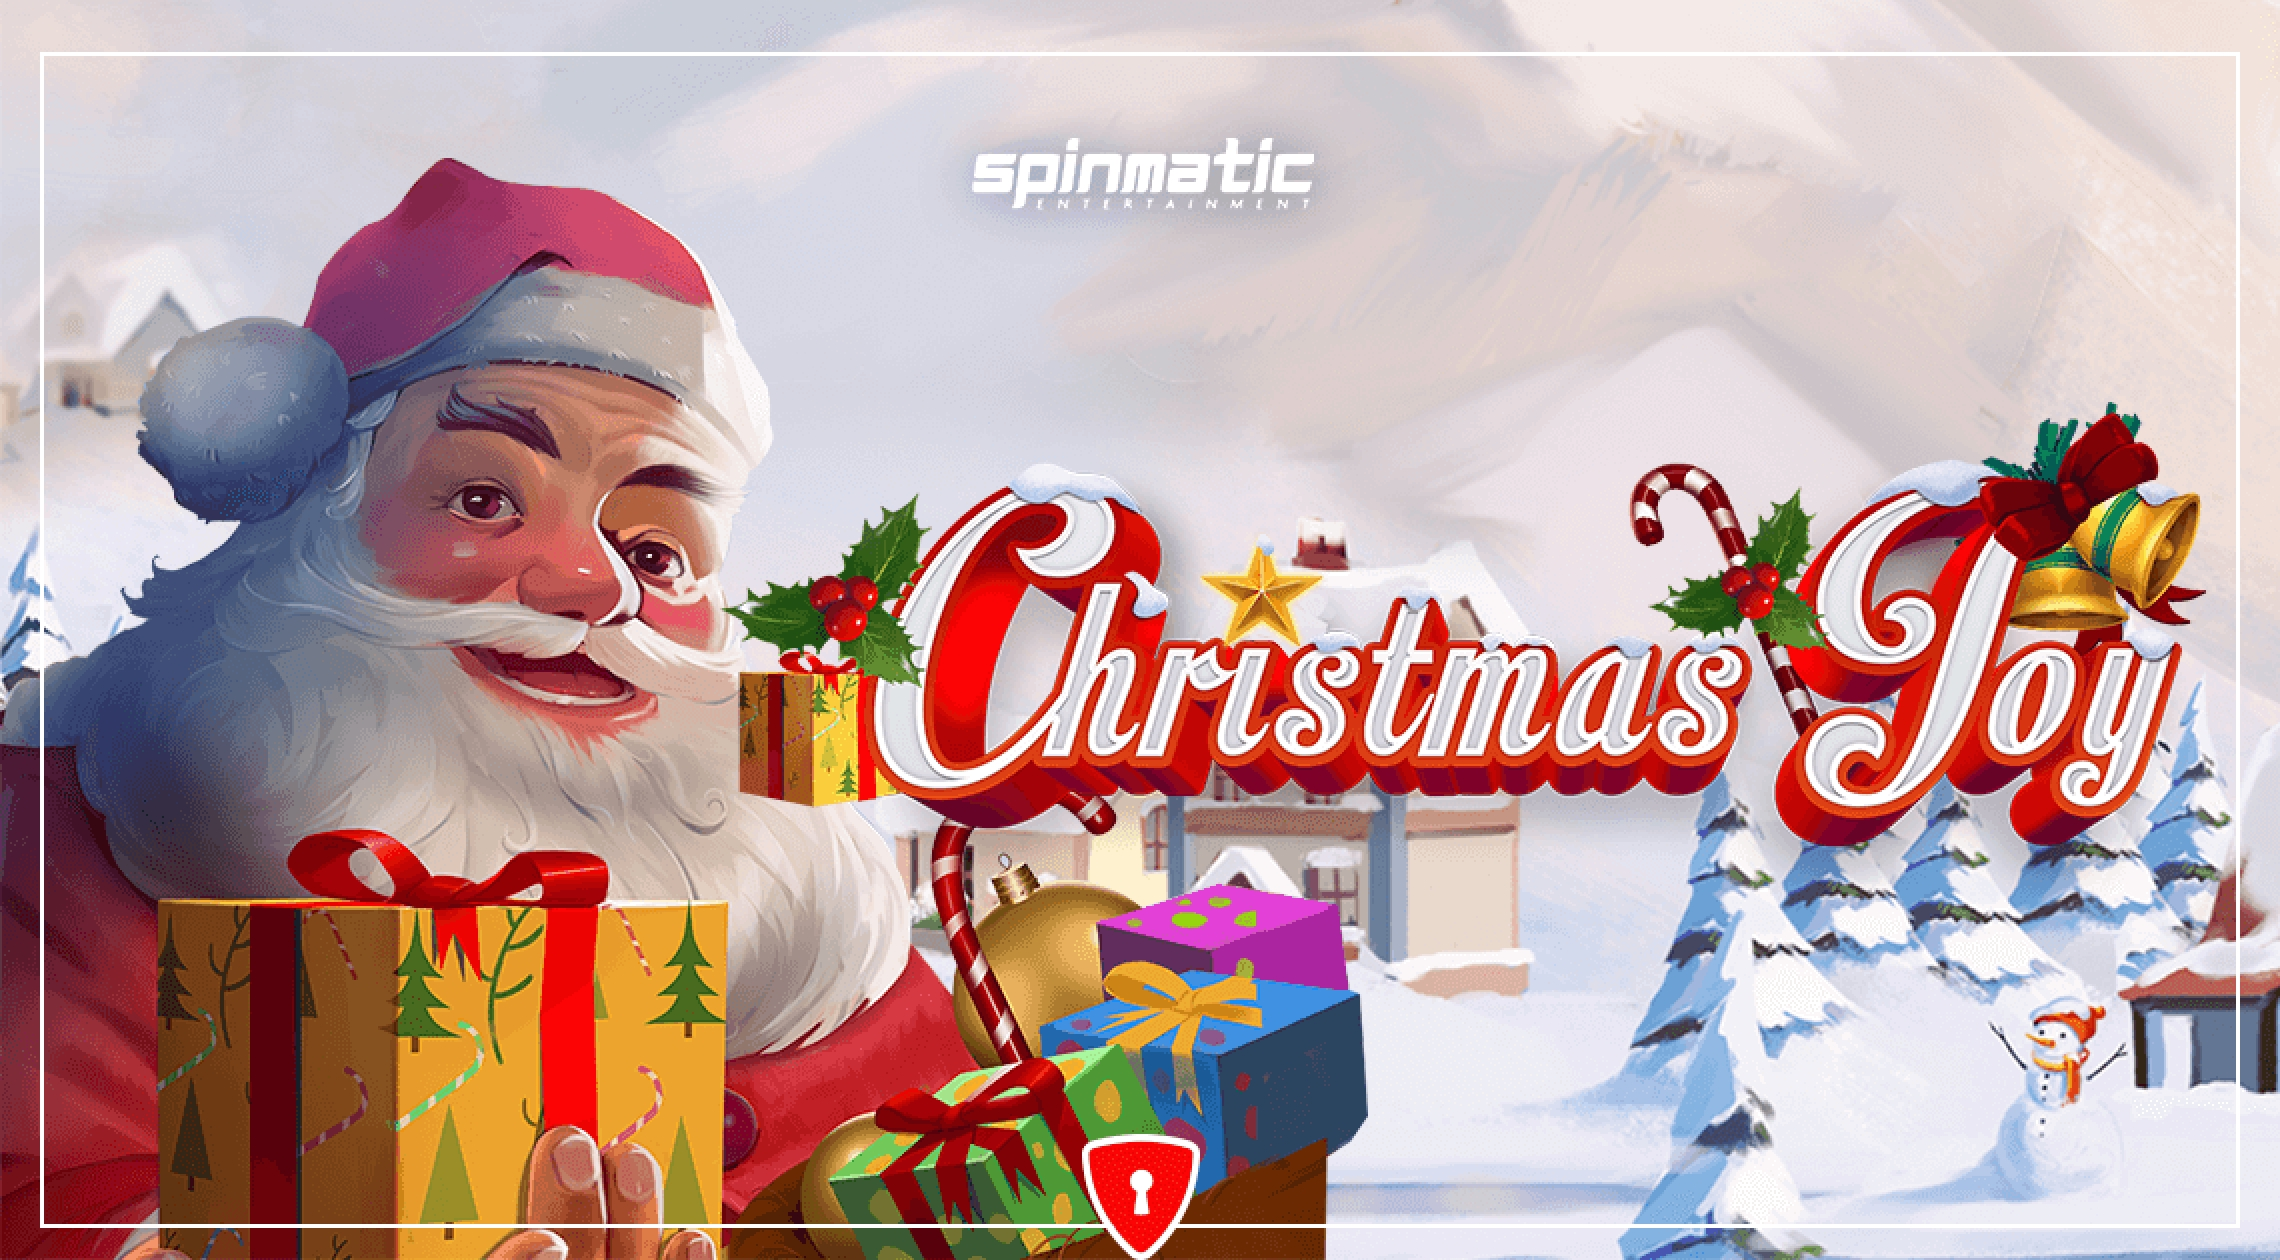 The Christmas Joy (Spinmatic) Online Slot Demo Game by Spinmatic